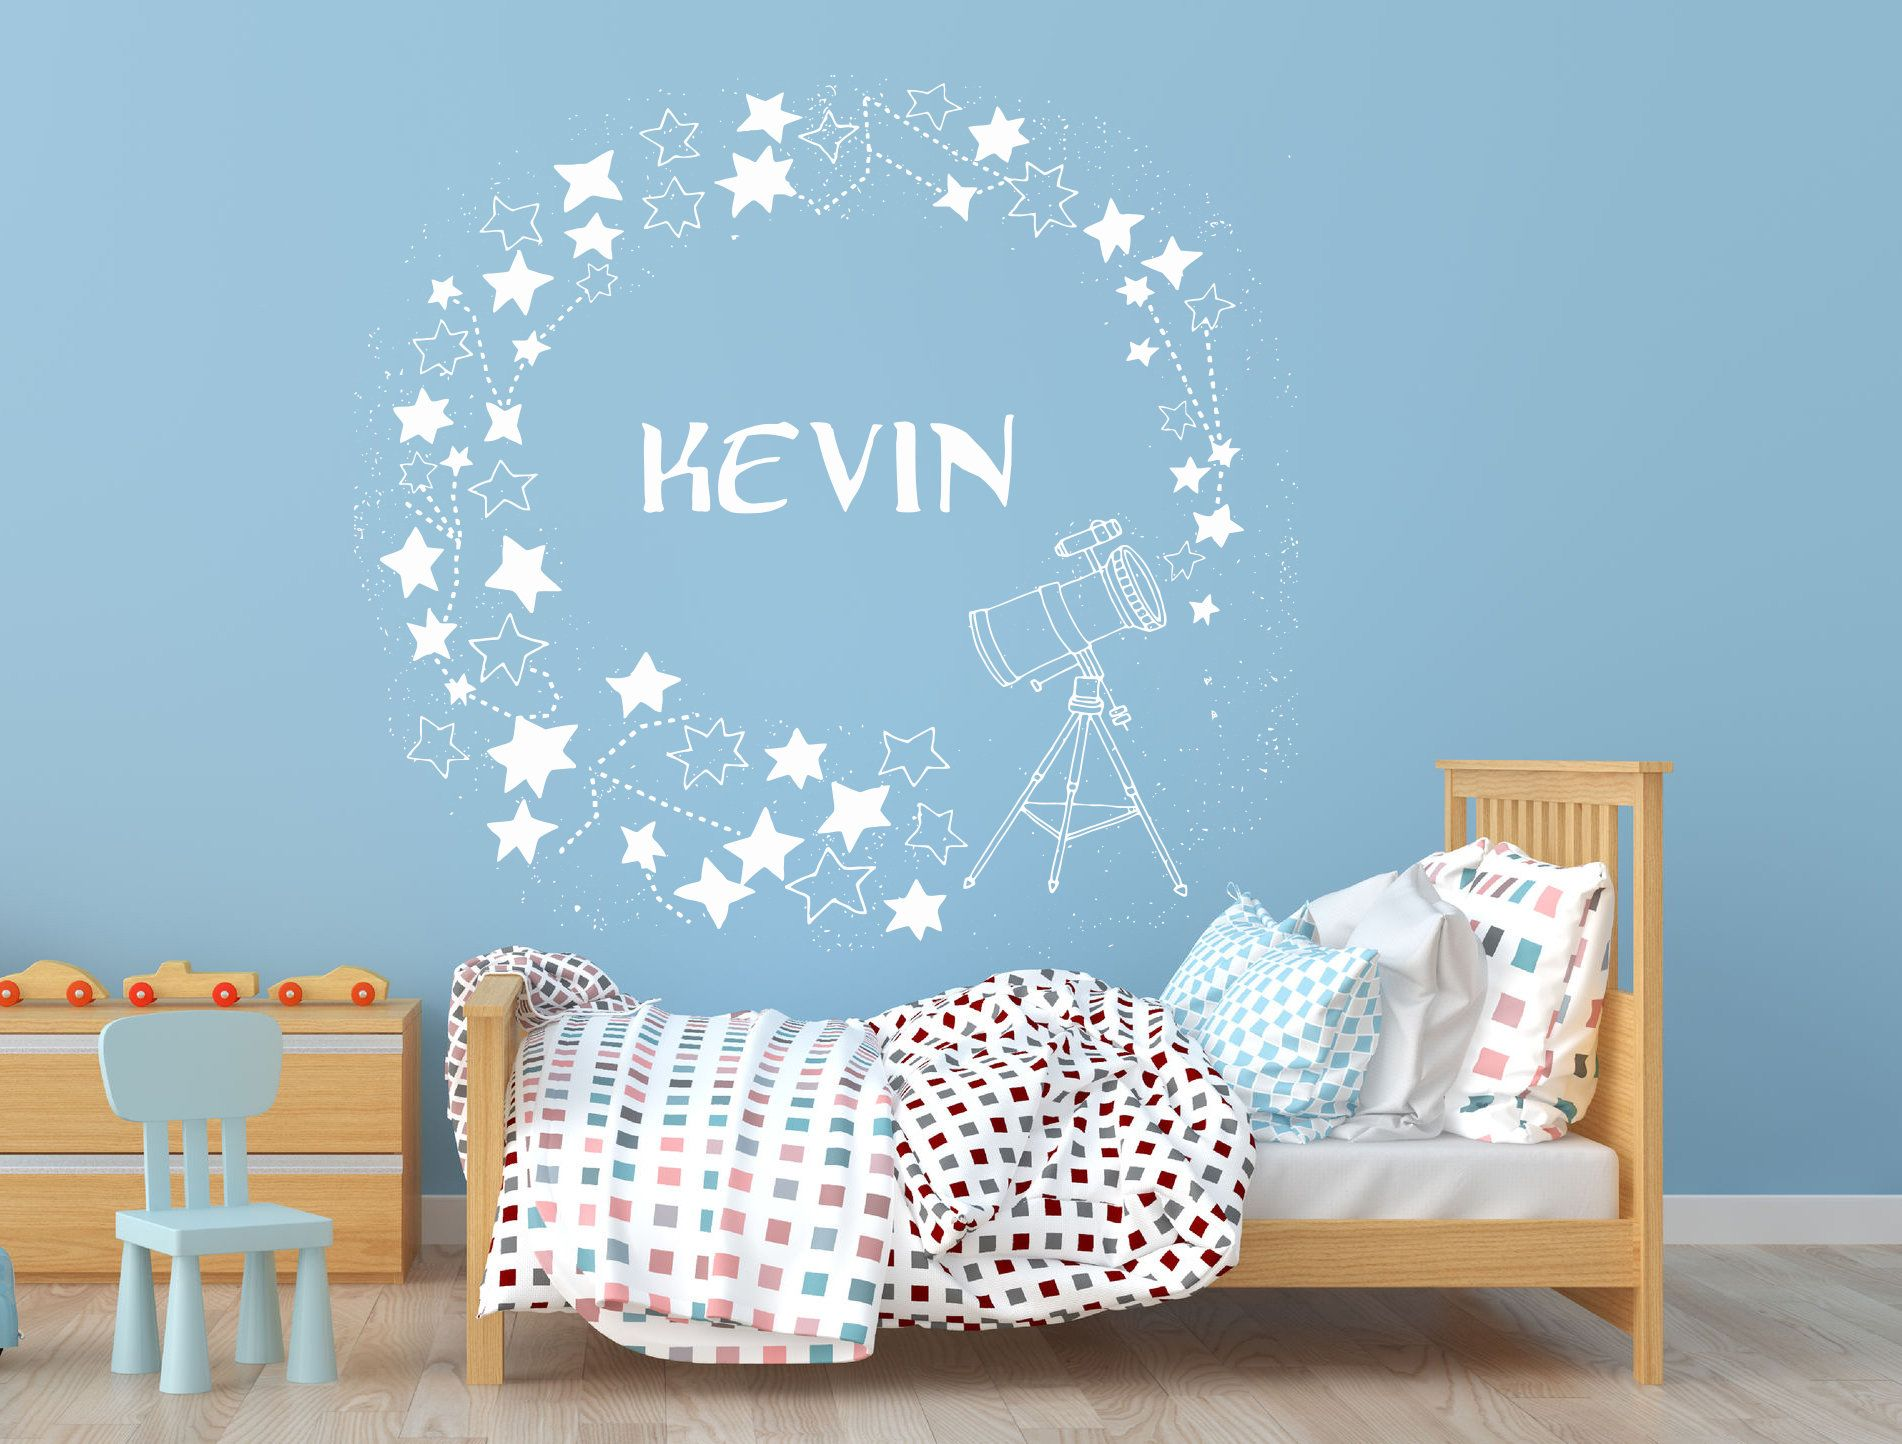 Custom Name Stars Constellation Wall Decal Astronomy Telescope Stars Wall Sticker Sky Wall Art C13 Constellation Wall Decal Star Wall Wall Decals